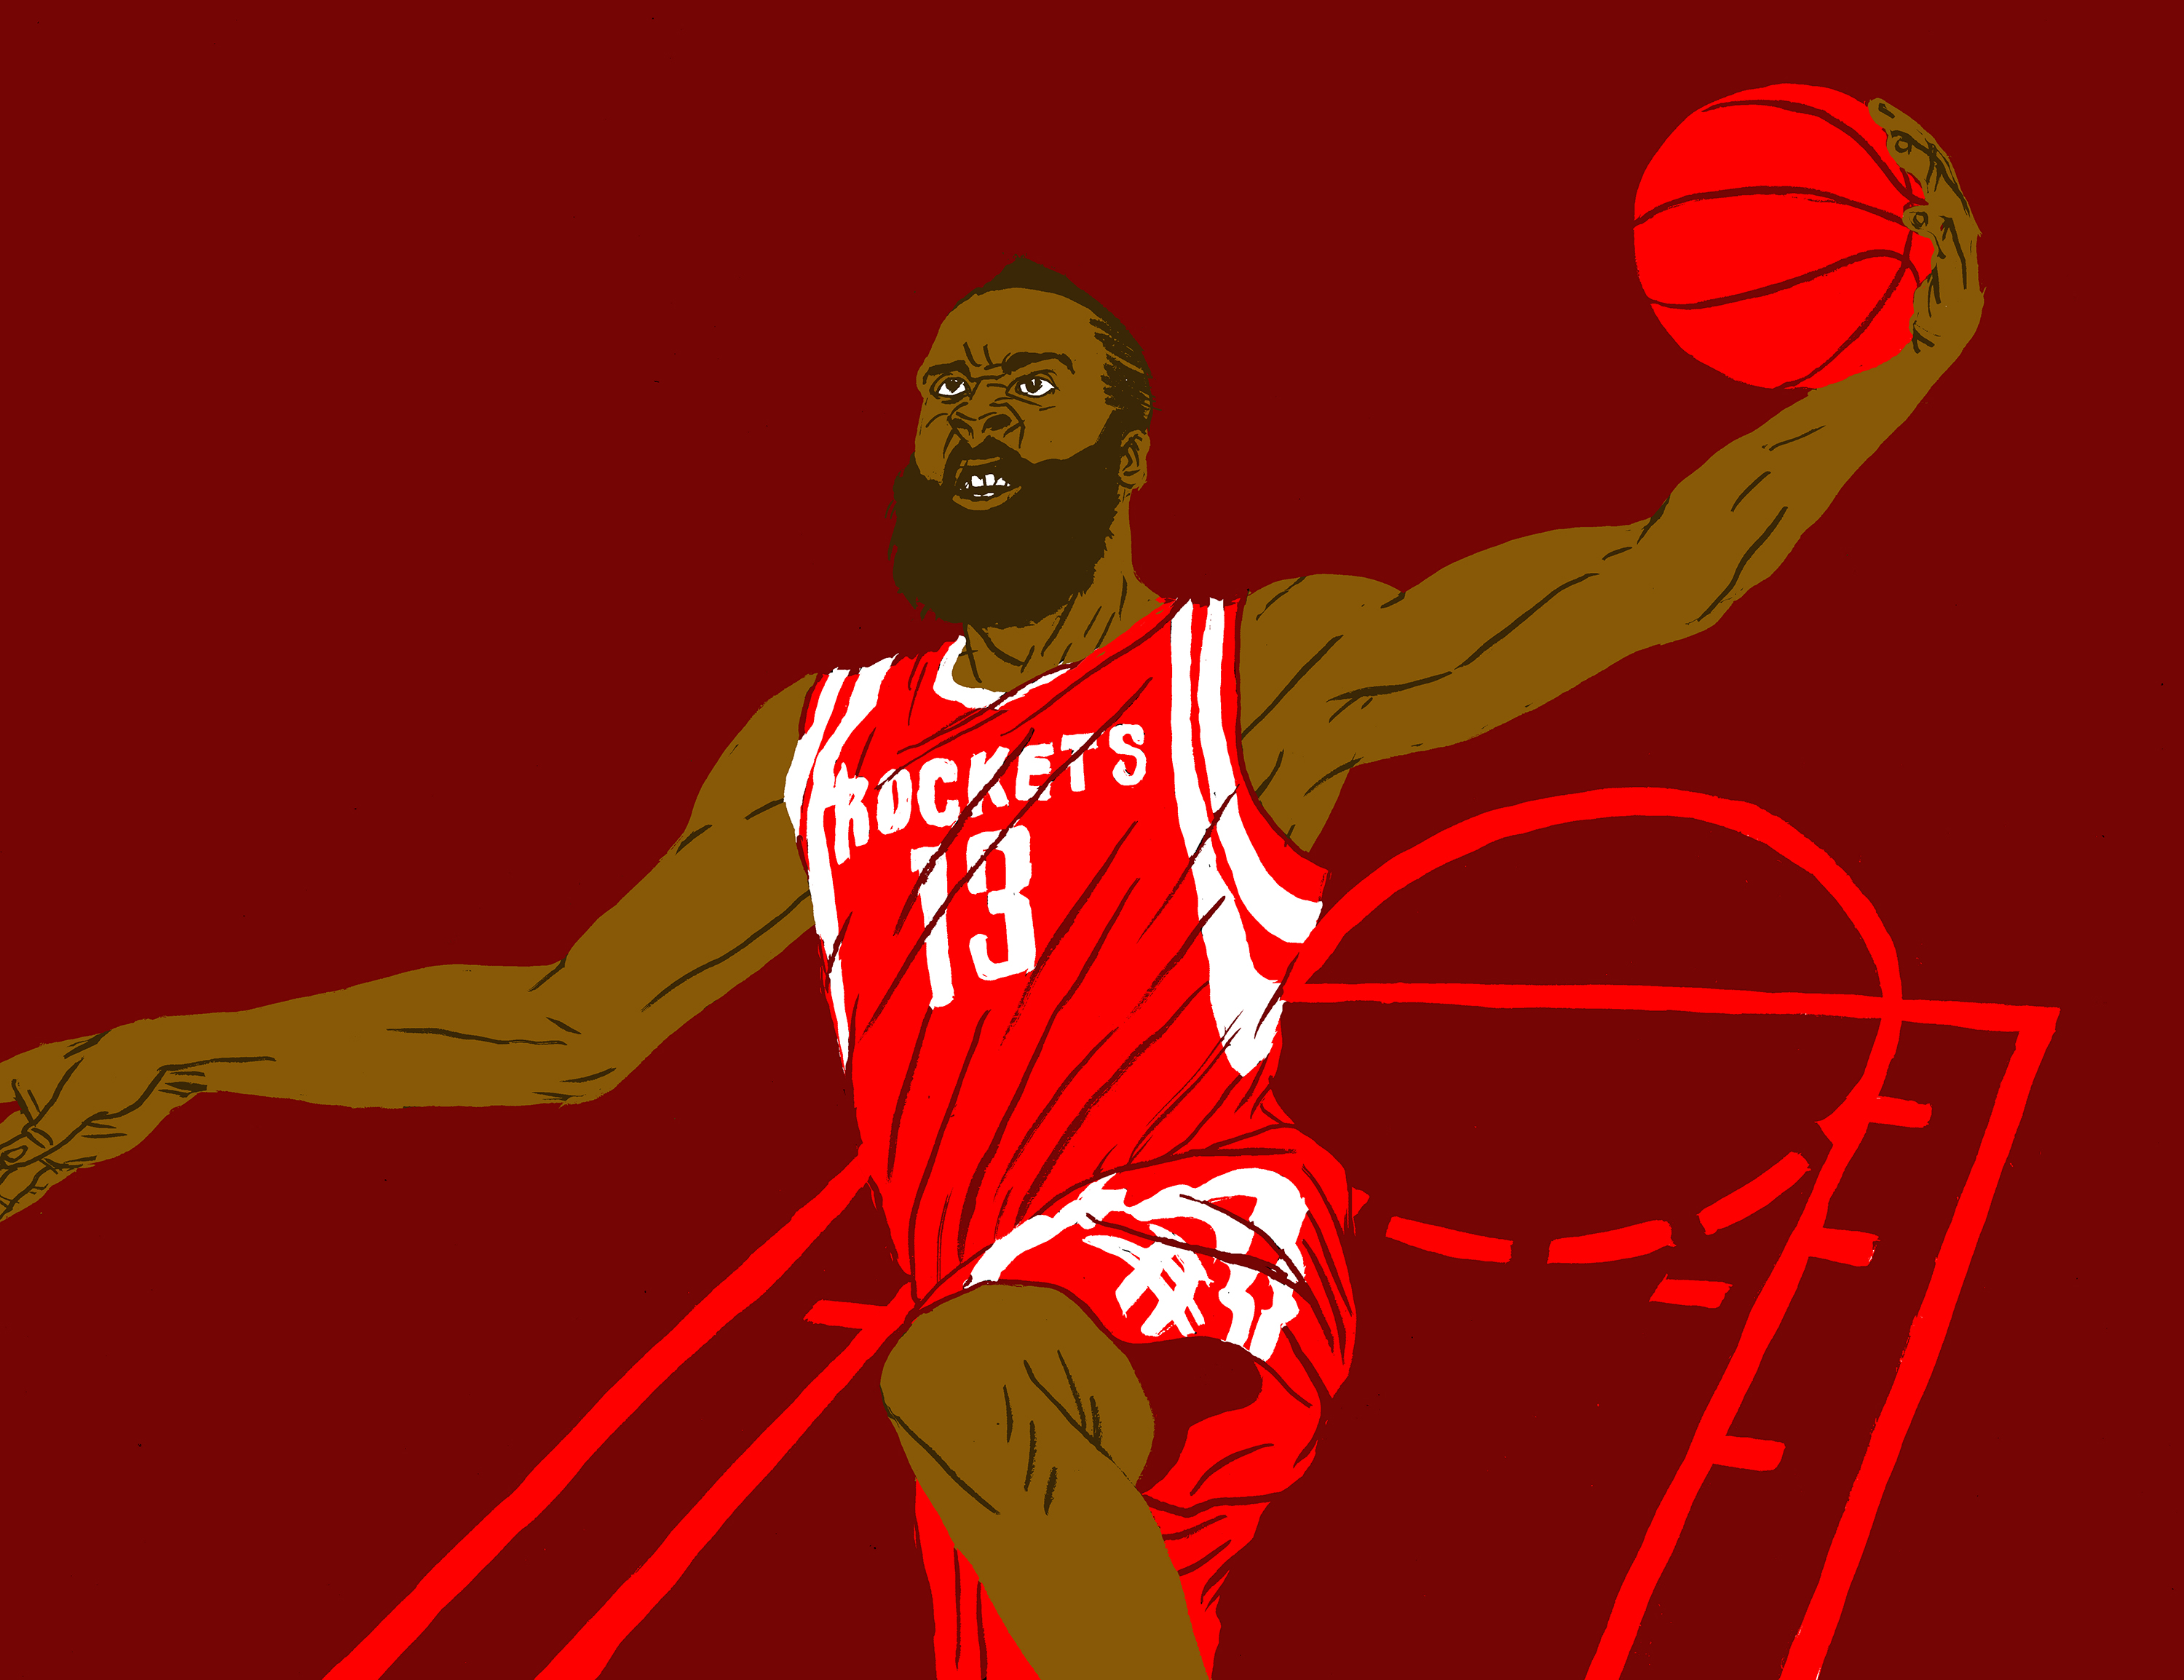 James Harden succeeds by any means necessary